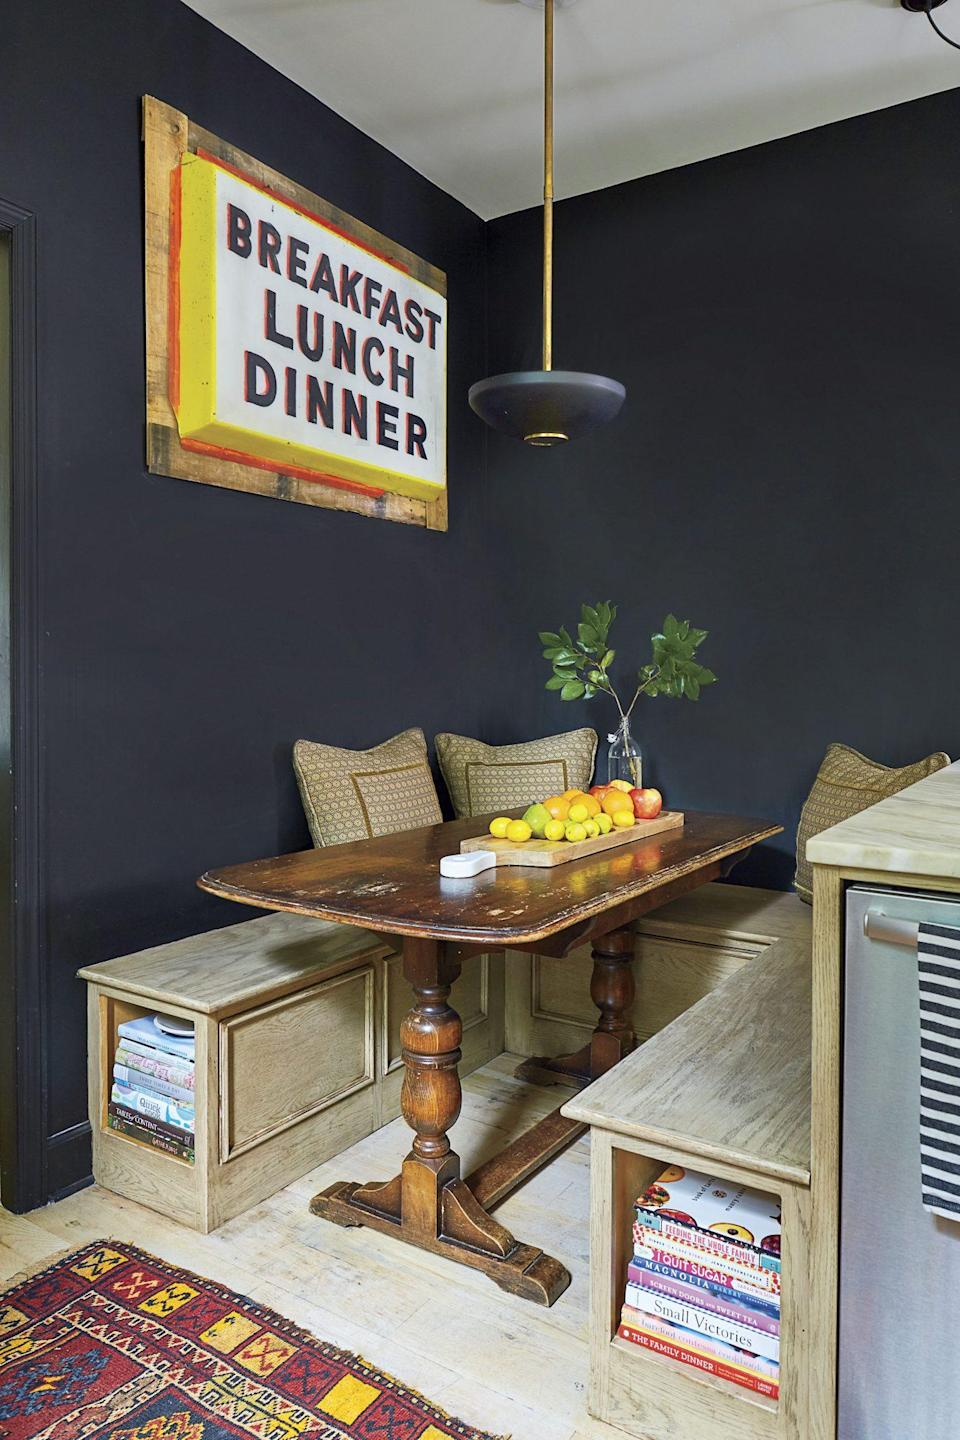 """<p>In Fran Keenan's <a href=""""https://www.southernliving.com/home/decor/small-cottage-decor-dark-accents"""" rel=""""nofollow noopener"""" target=""""_blank"""" data-ylk=""""slk:Birmingham, Alabama, cottage,"""" class=""""link rapid-noclick-resp"""">Birmingham, Alabama, cottage,</a> dramatic black walls make the perfect backdrop for vintage signs, a staple of farmhouse style. If you're looking for farmhouse paint colors that offer an equally bold look, try <a href=""""https://www.benjaminmoore.com/en-us/color-overview/find-your-color/color/2129-20/soot?color=2129-20"""" rel=""""nofollow noopener"""" target=""""_blank"""" data-ylk=""""slk:Benjamin Moore Soot (2129-20)"""" class=""""link rapid-noclick-resp"""">Benjamin Moore Soot (2129-20)</a>.</p>"""